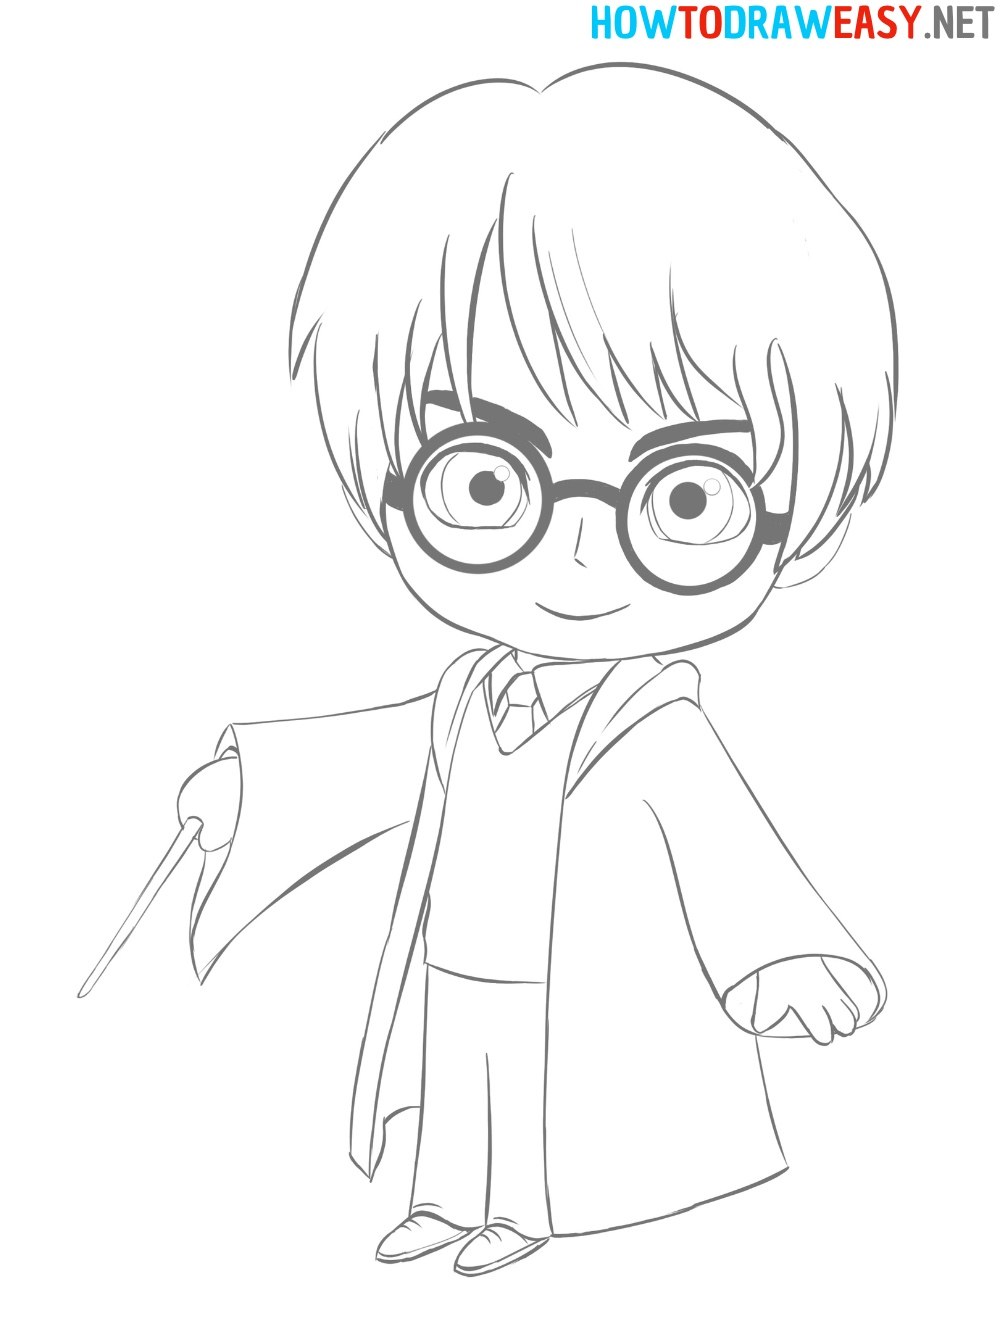 How to Draw Harry Potter Character